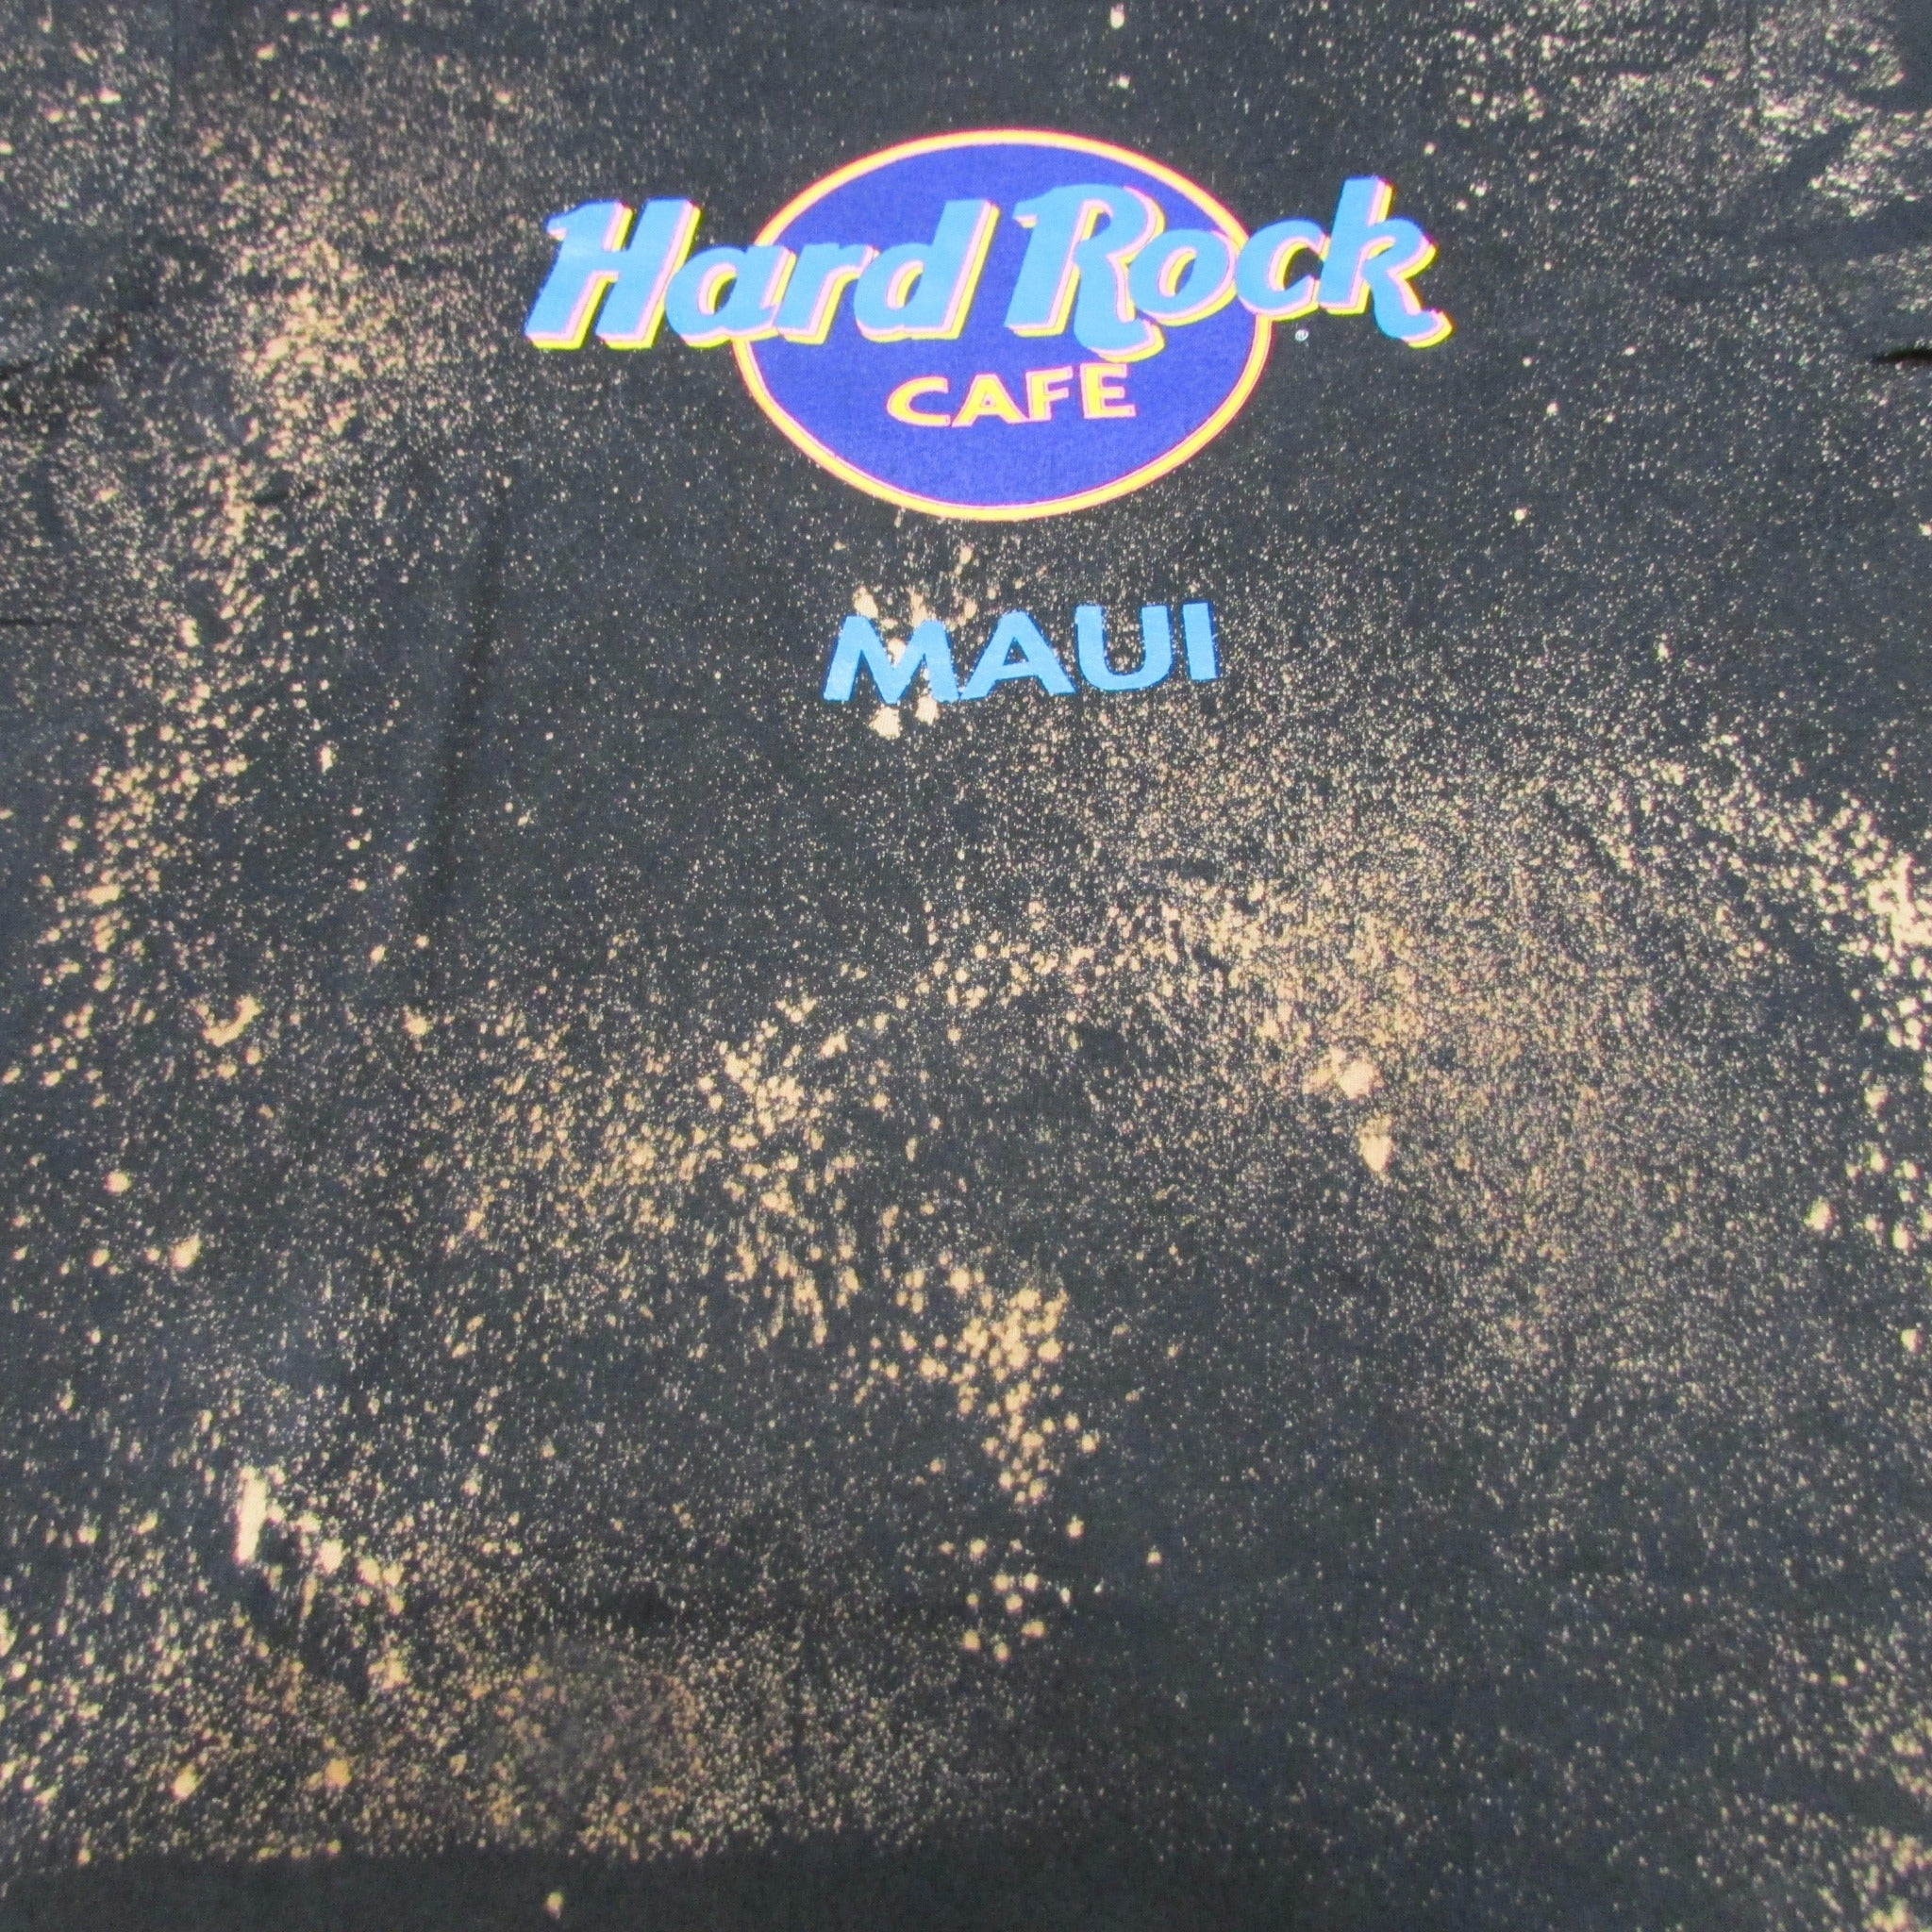 Hard Rock Cafe Maui Hawaii Vintage Bleach Spray Pattern T-Shirt Sz L